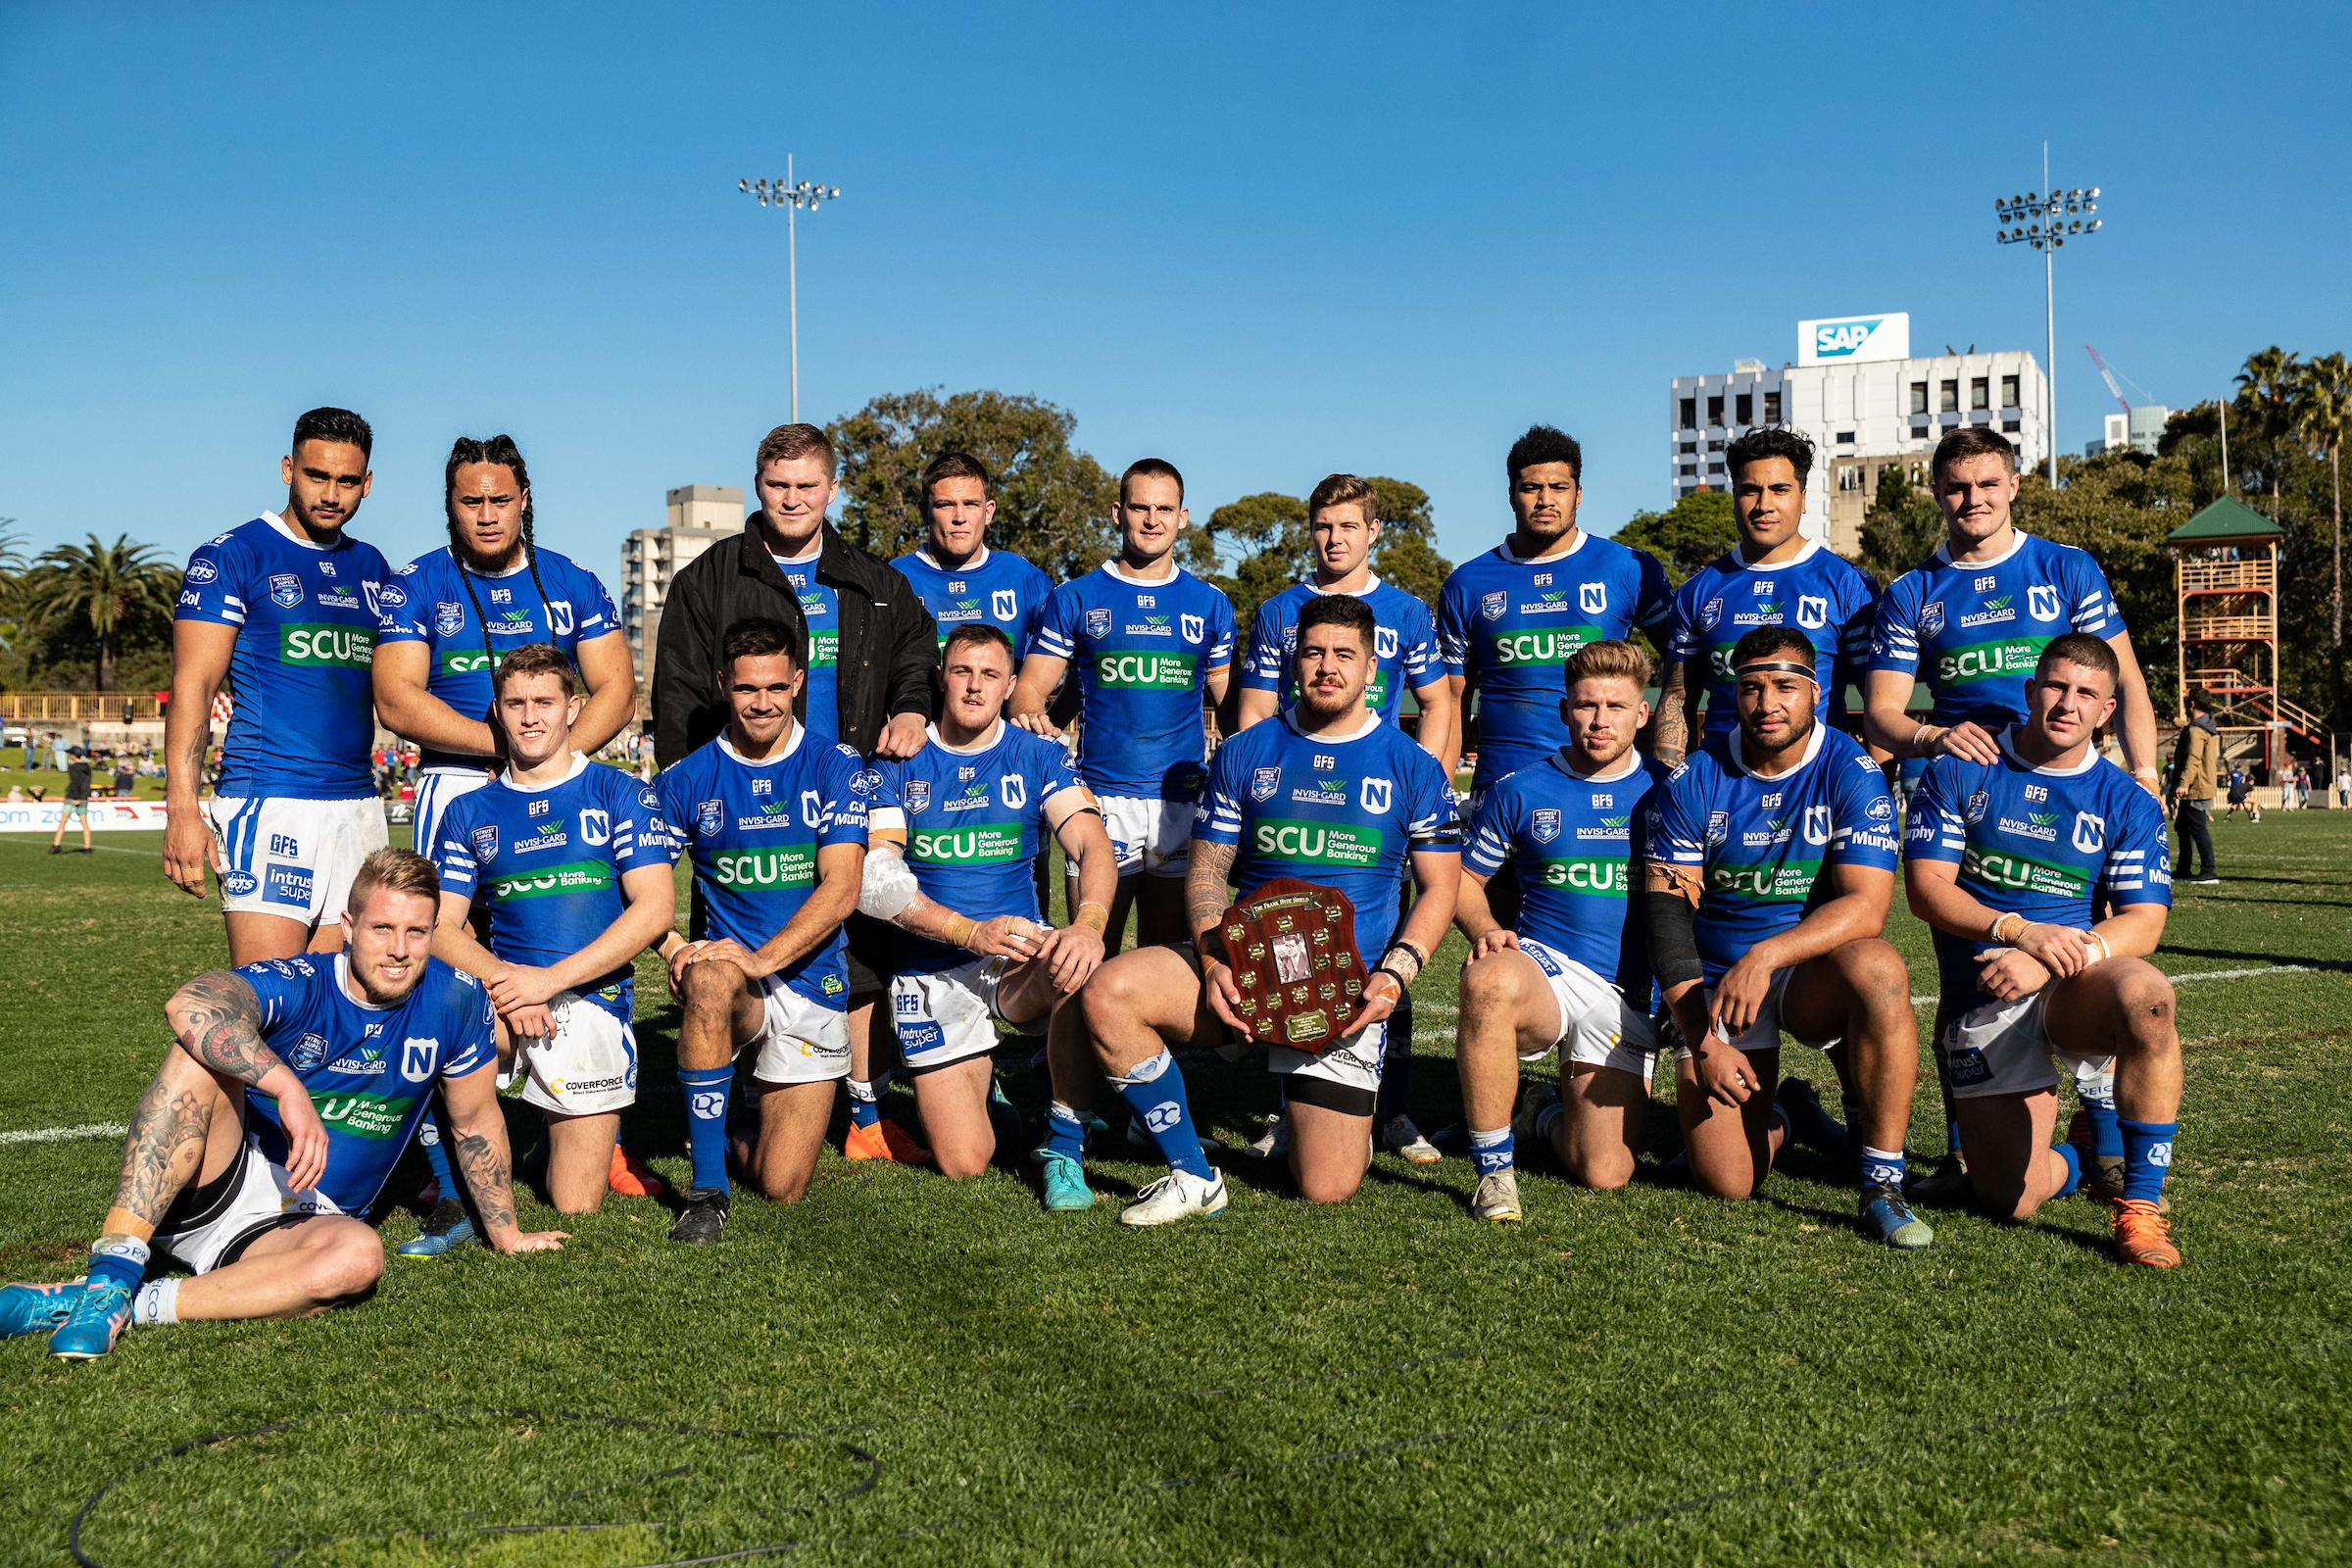 July 14, 2018 - North Sydney, New South Wales, Australia - Newtown Jets players with the Frank Hyde Shield during the NSWRL Intrust Super Premiership Round Eighteen match between the North Sydney Bears and the Newtown Jets at North Sydney Oval in North Sydney, New South Wales. (Mario Facchini/mafphotography)